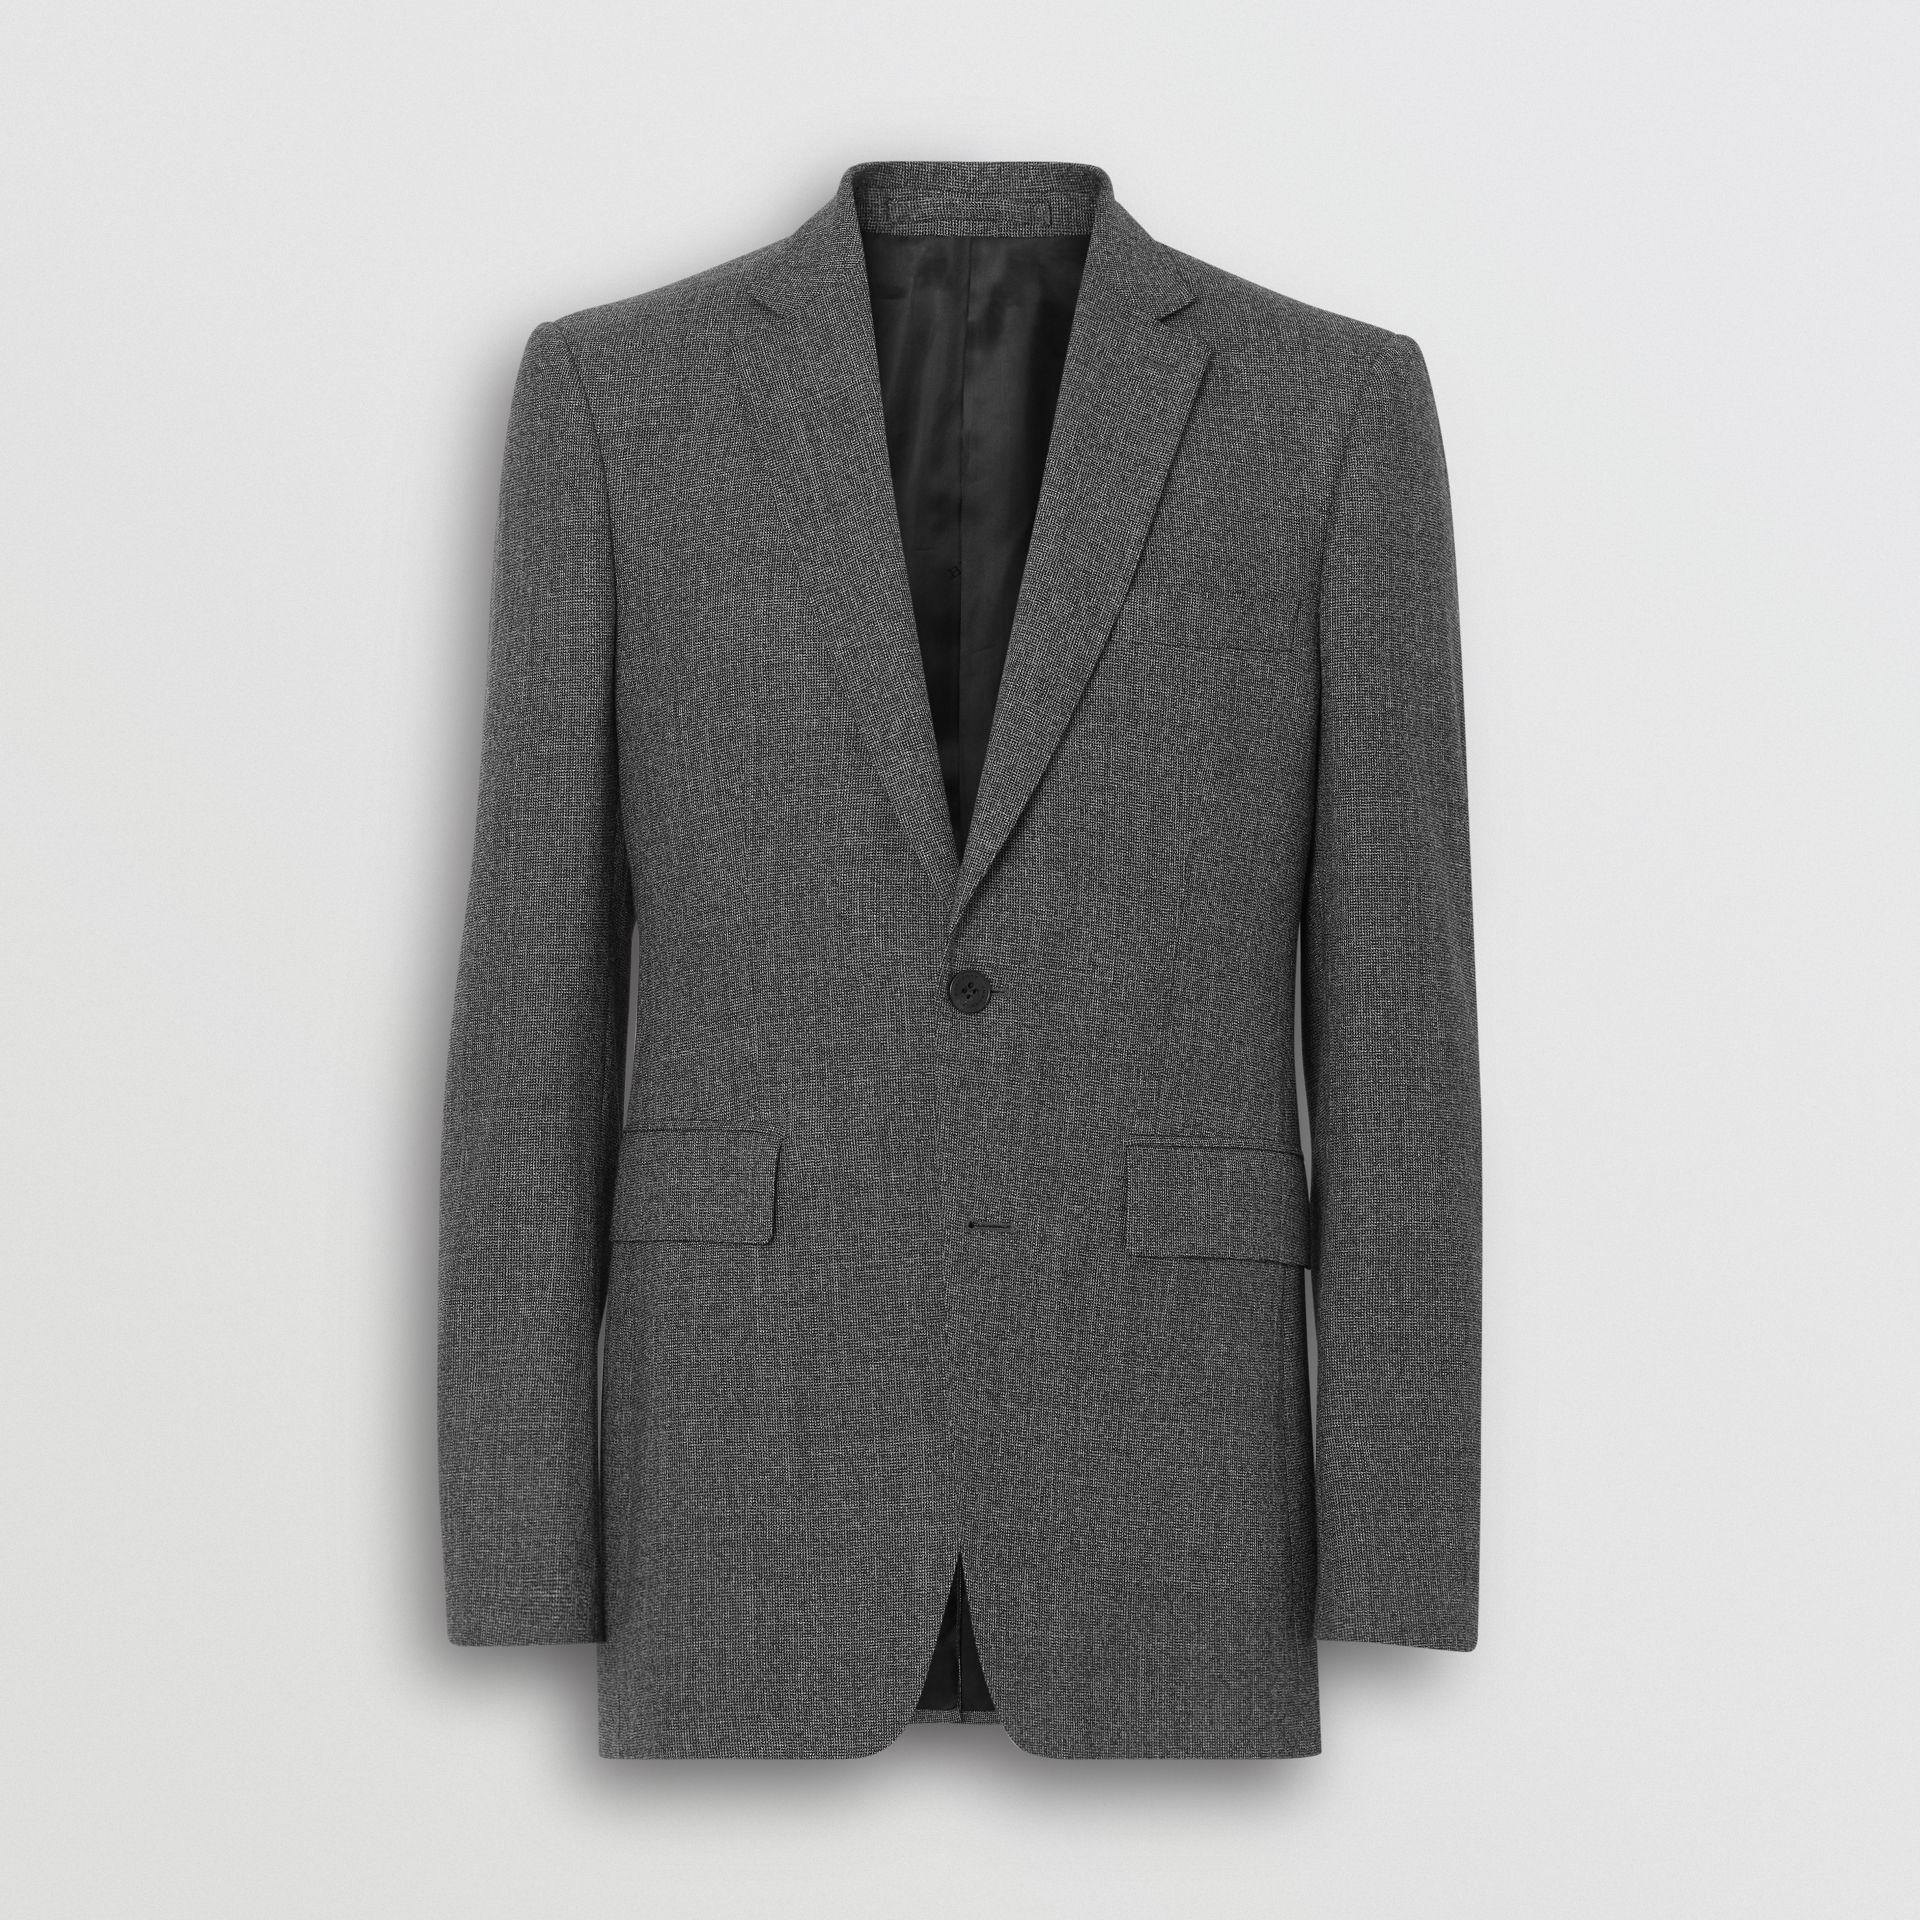 Classic Fit Melange Wool Three-piece Suit in Charcoal - Men | Burberry - gallery image 3